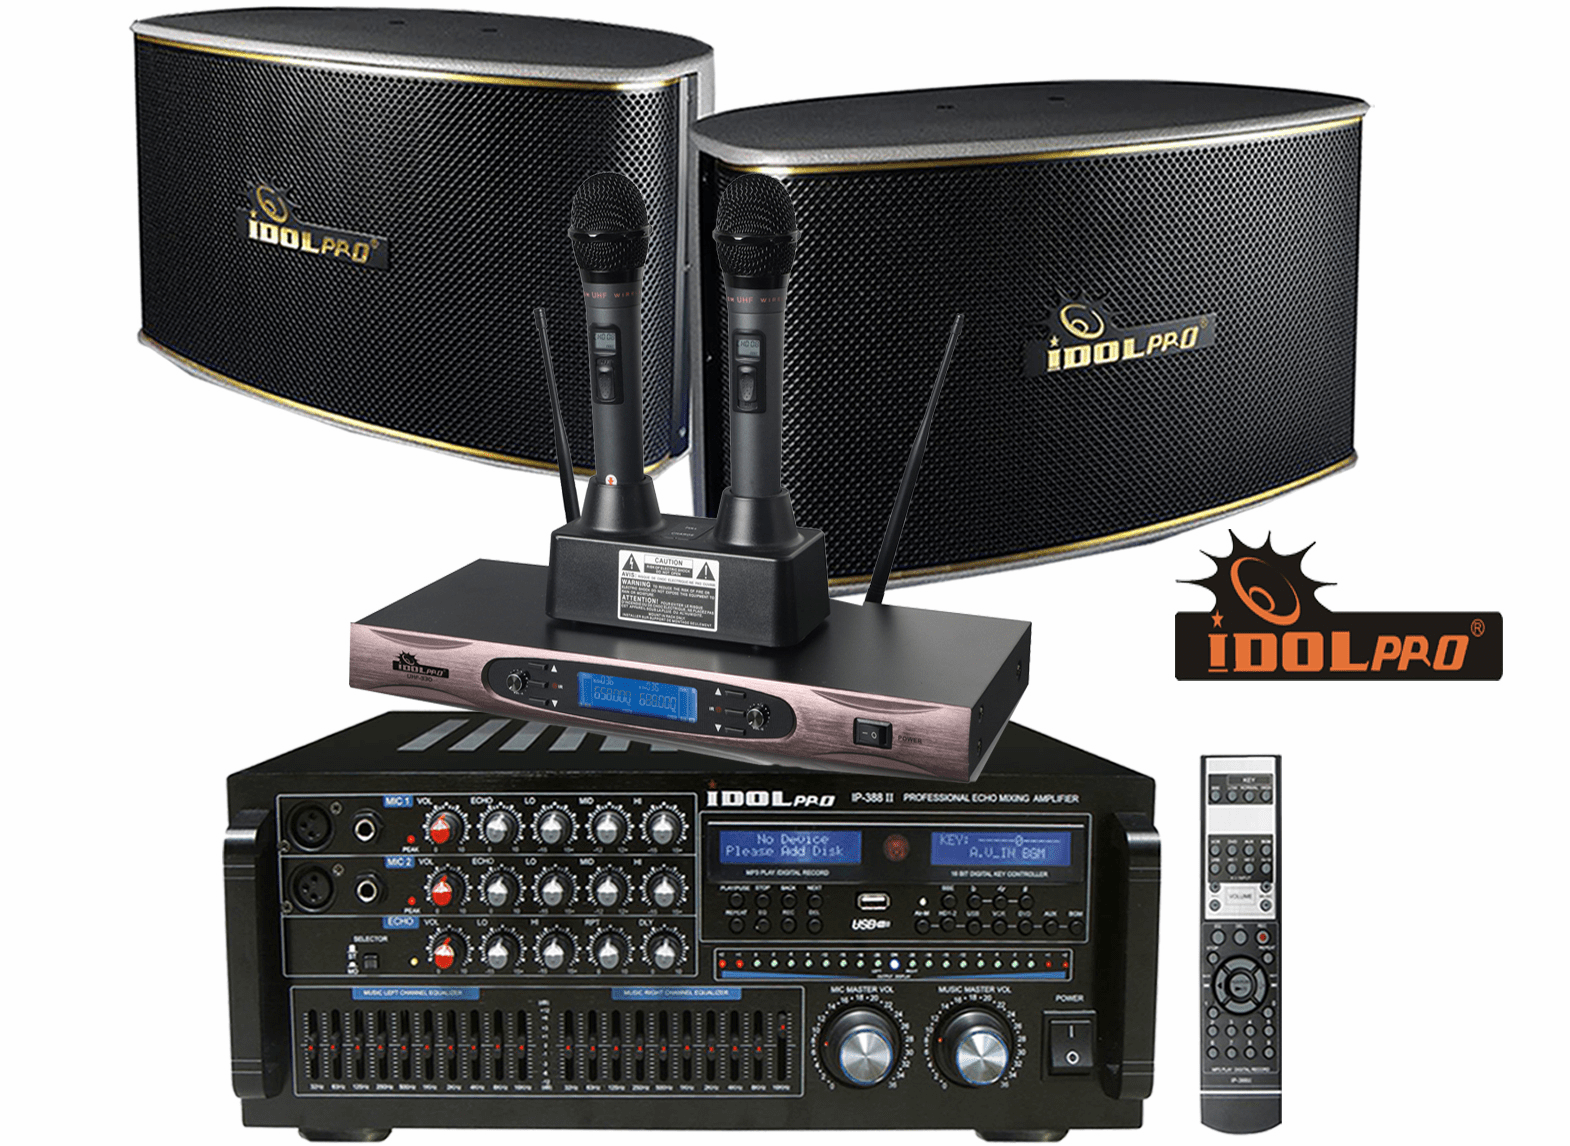 "<font color="" blue"">PACKAGE 3 </font> -- IPS-630 Speakers & IP-388 II Mixing Amplifier & UHF-330 Microphone"